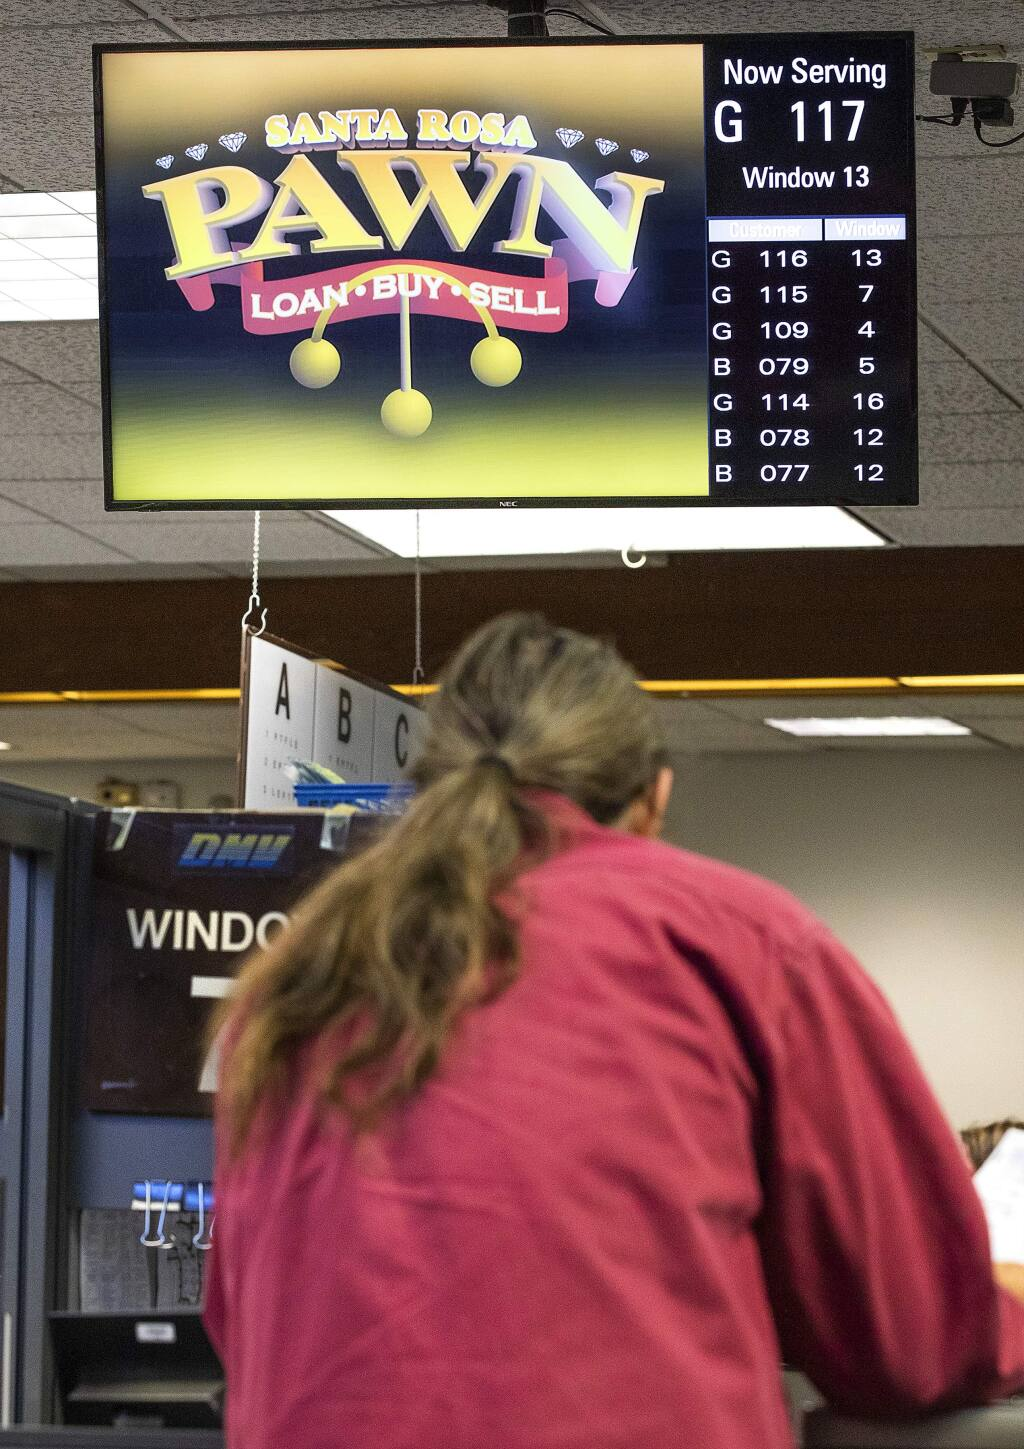 The Motor Vehicle Network, a non-governmental business, brings in hundreds of thousands of dollars for advertising next to customer numbers on television screens at DMV offices across the state including the Santa Rosa office. (photo by John Burgess/The Press Democrat)